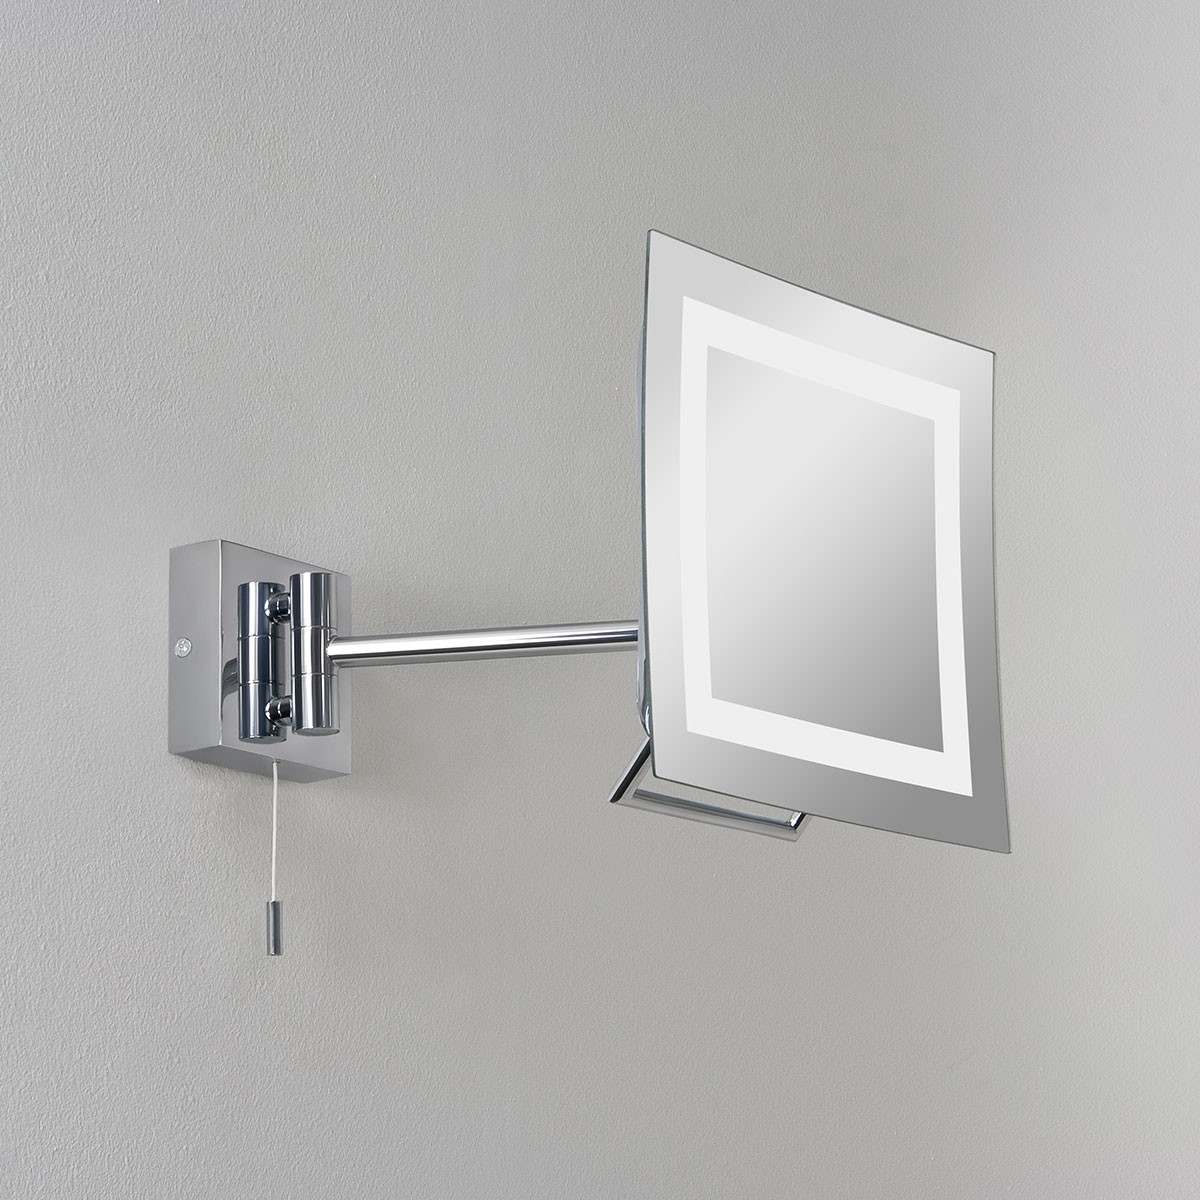 astro niro polished chrome bathroom mirror light at uk electrical supplies. Black Bedroom Furniture Sets. Home Design Ideas